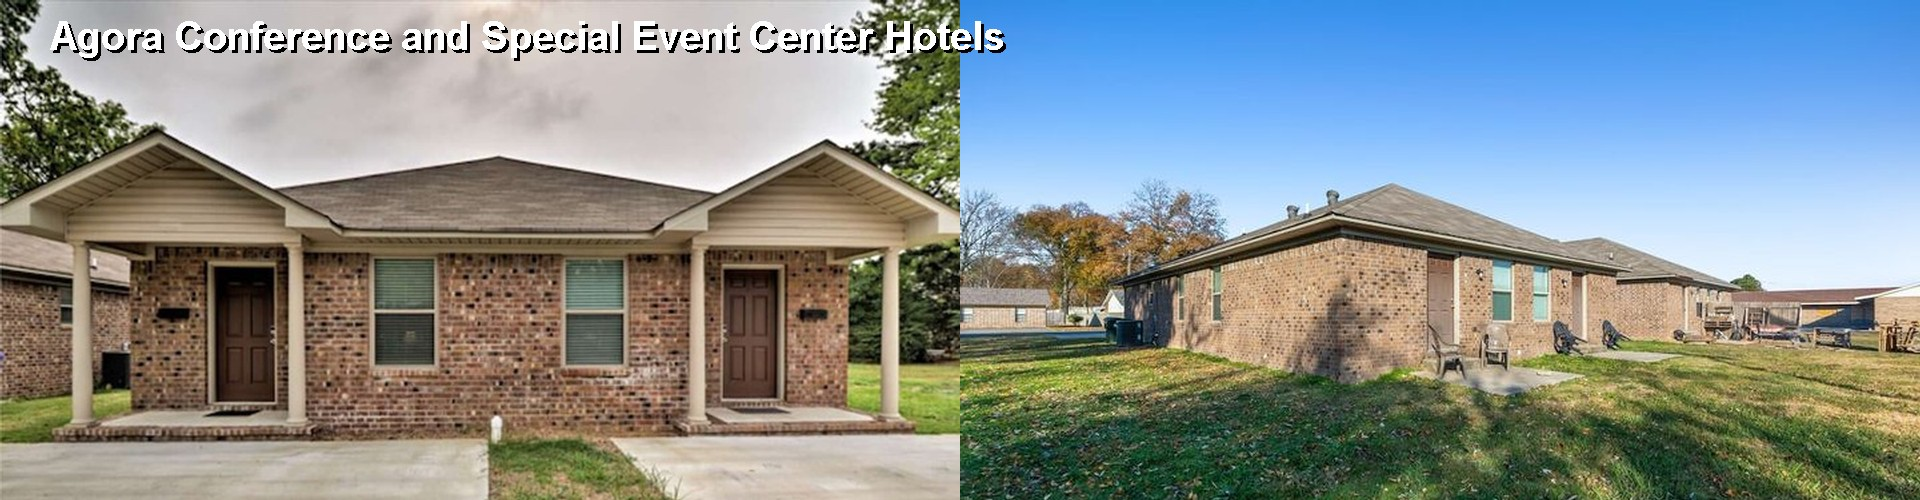 35 Hotels Near Agora Conference And Special Event Center